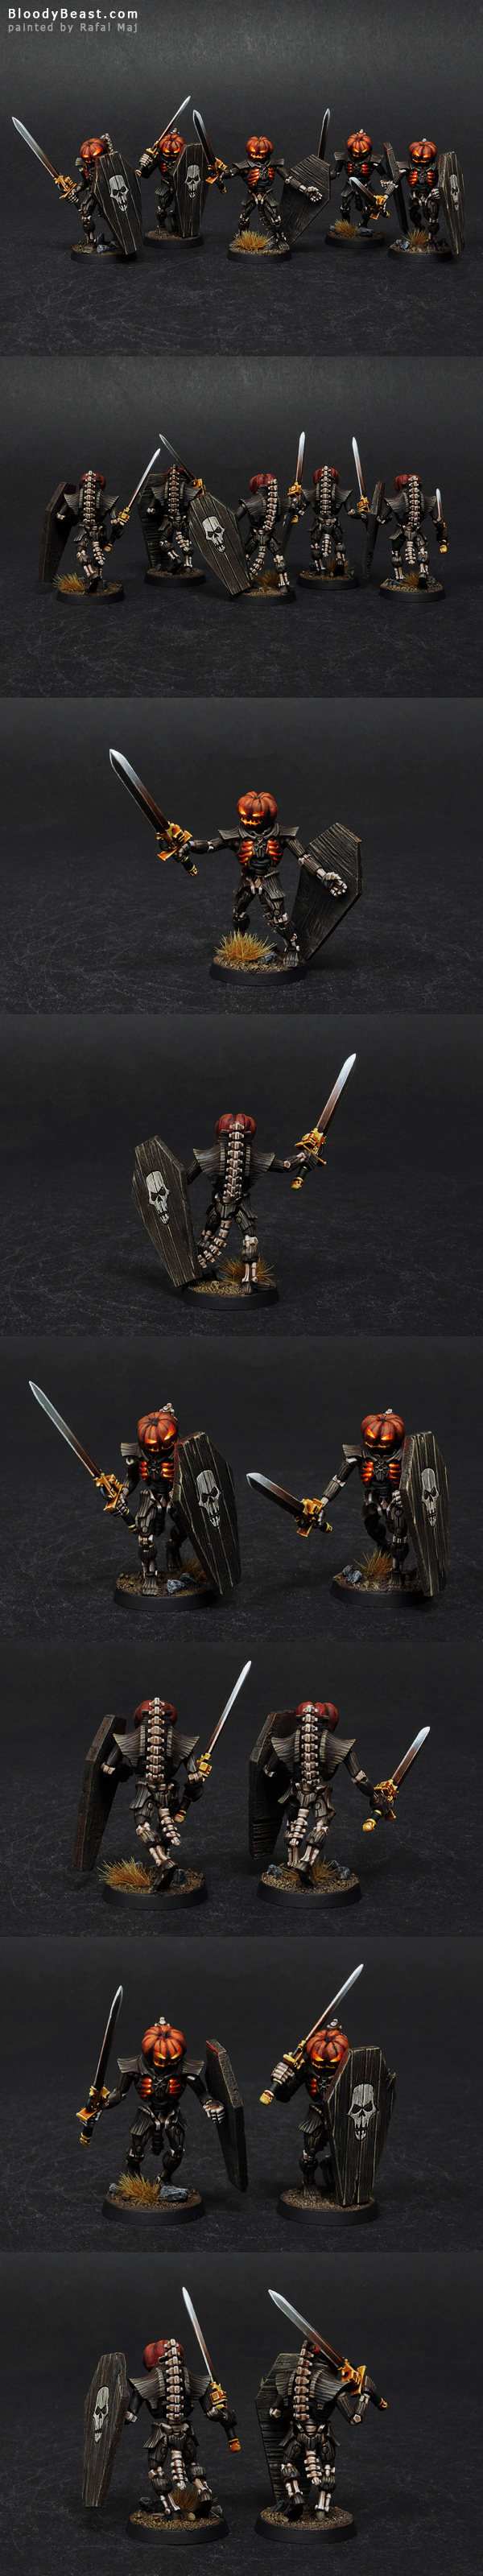 Necron Lychguards of the Pumpkin Dynasty painted by Rafal Maj (BloodyBeast.com)